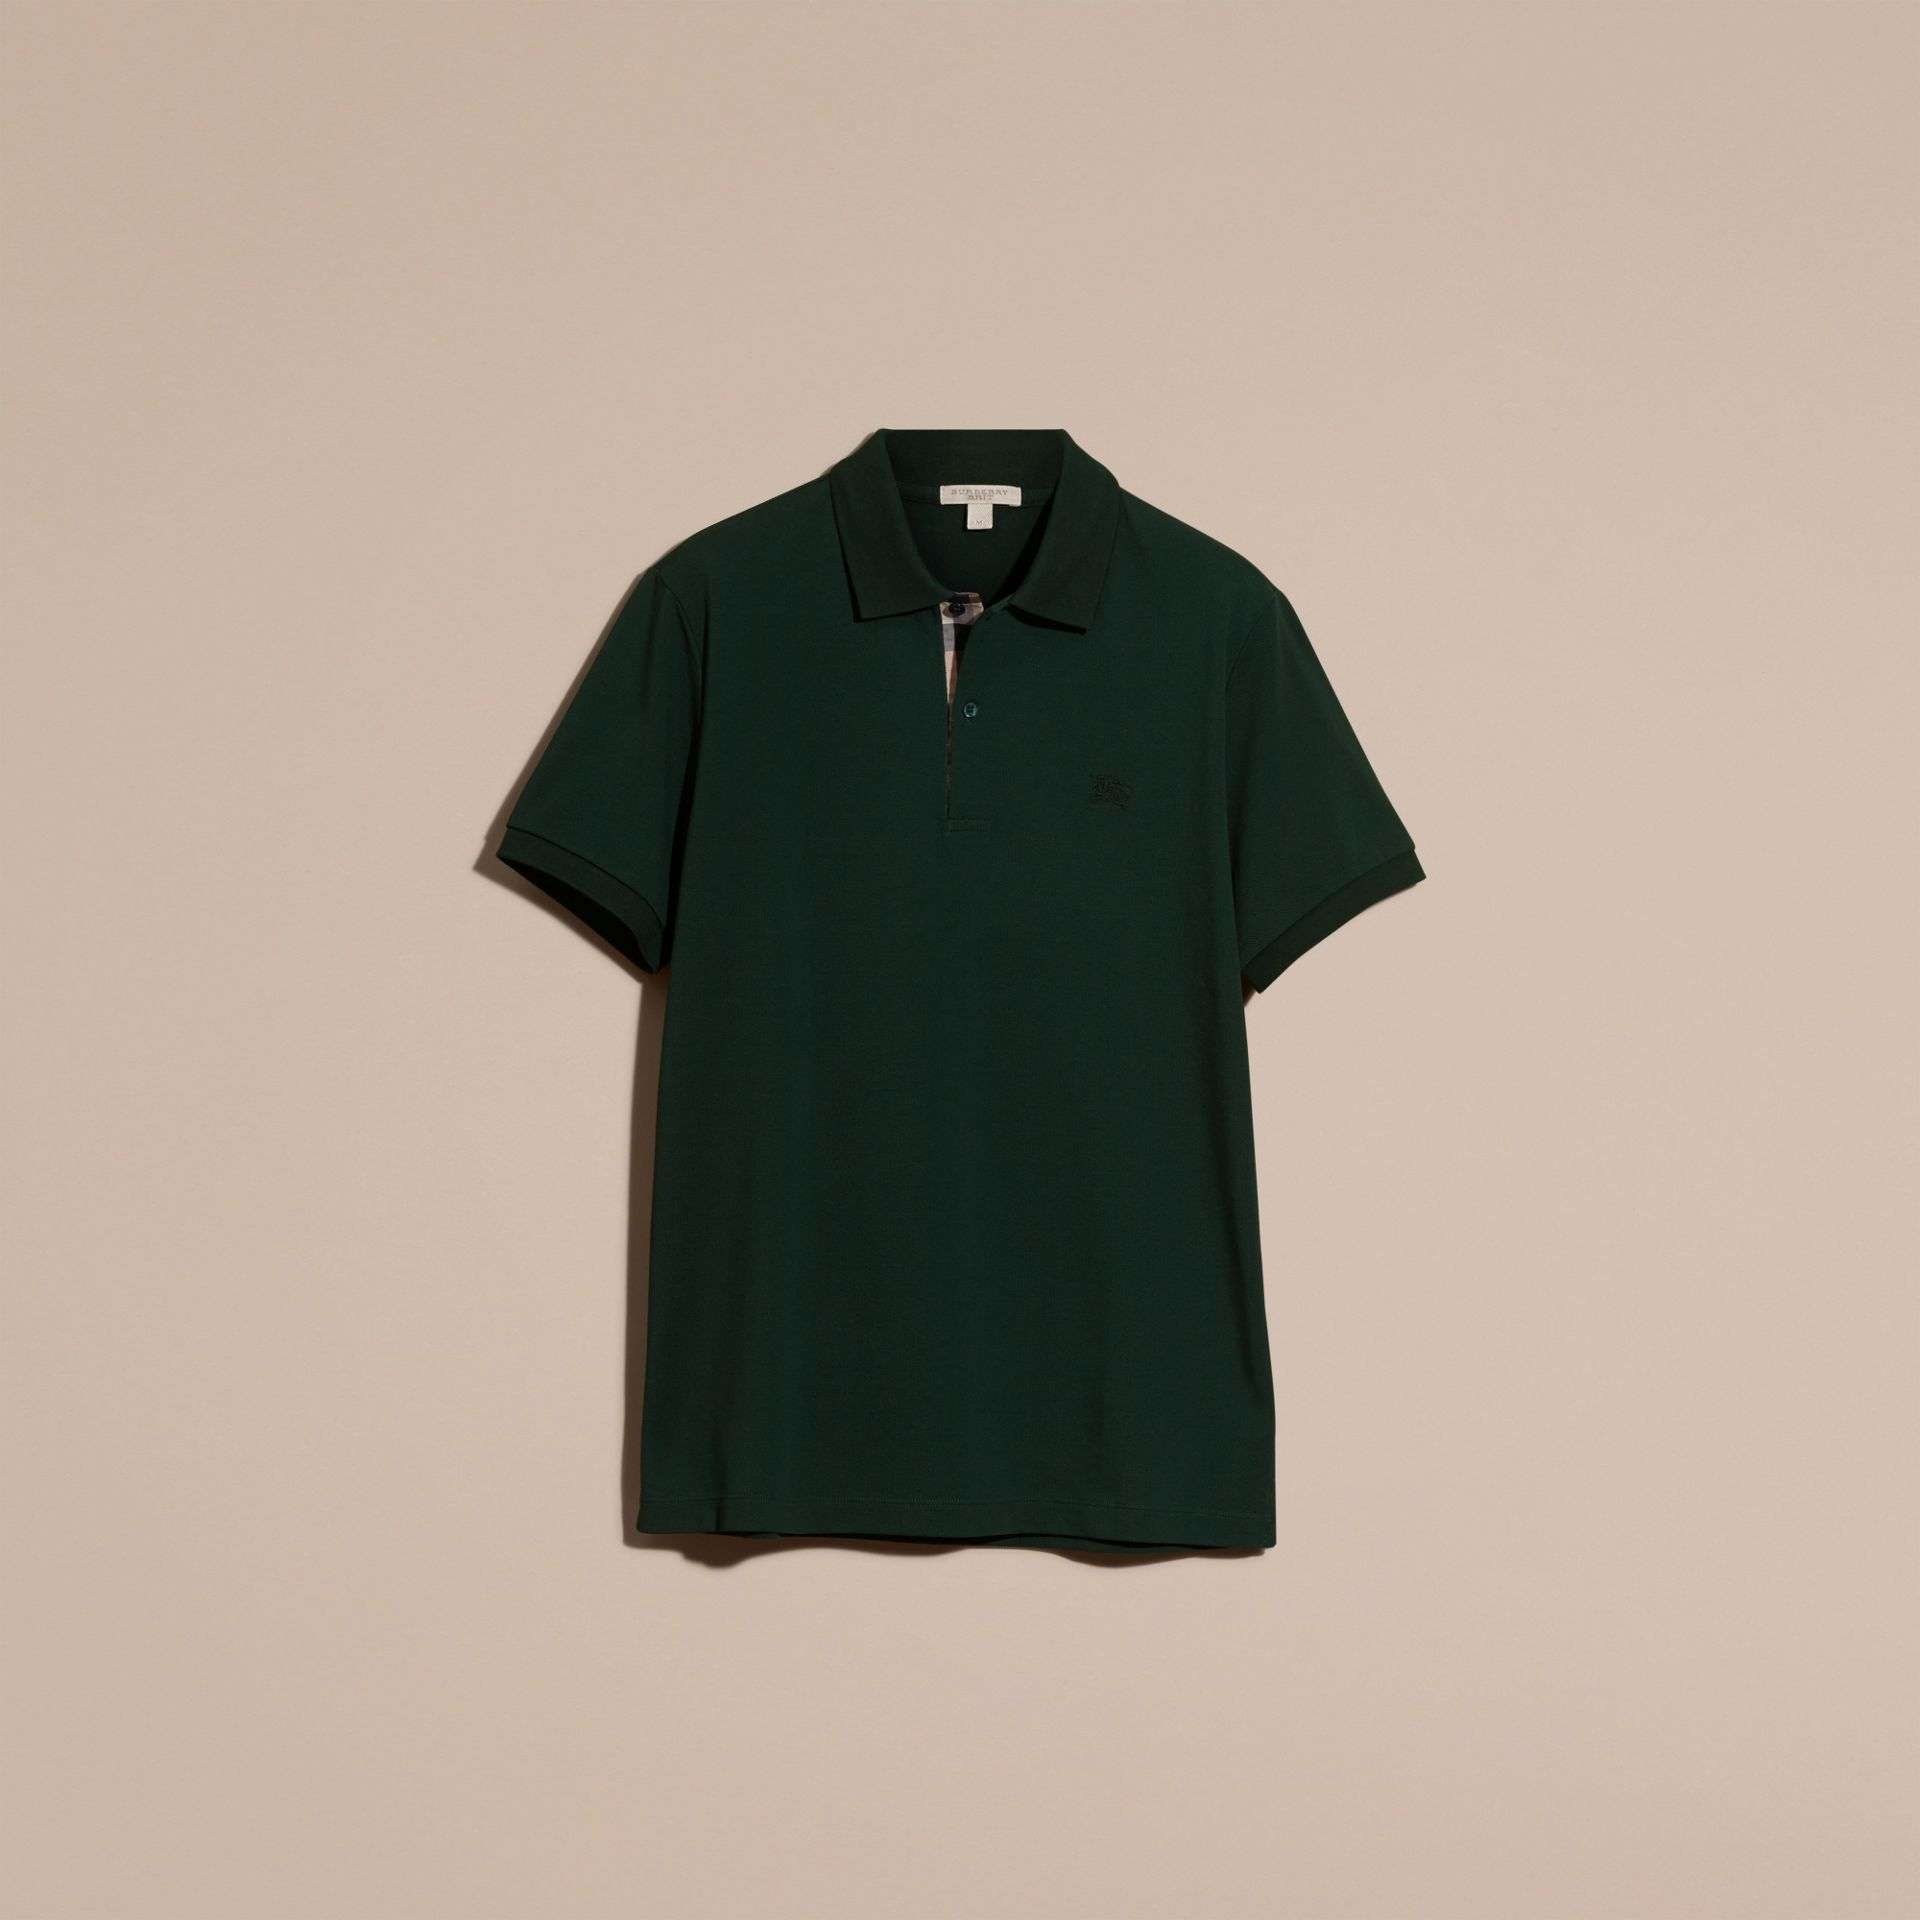 Racing green Check Placket Cotton Piqué Polo Shirt Racing Green - gallery image 4